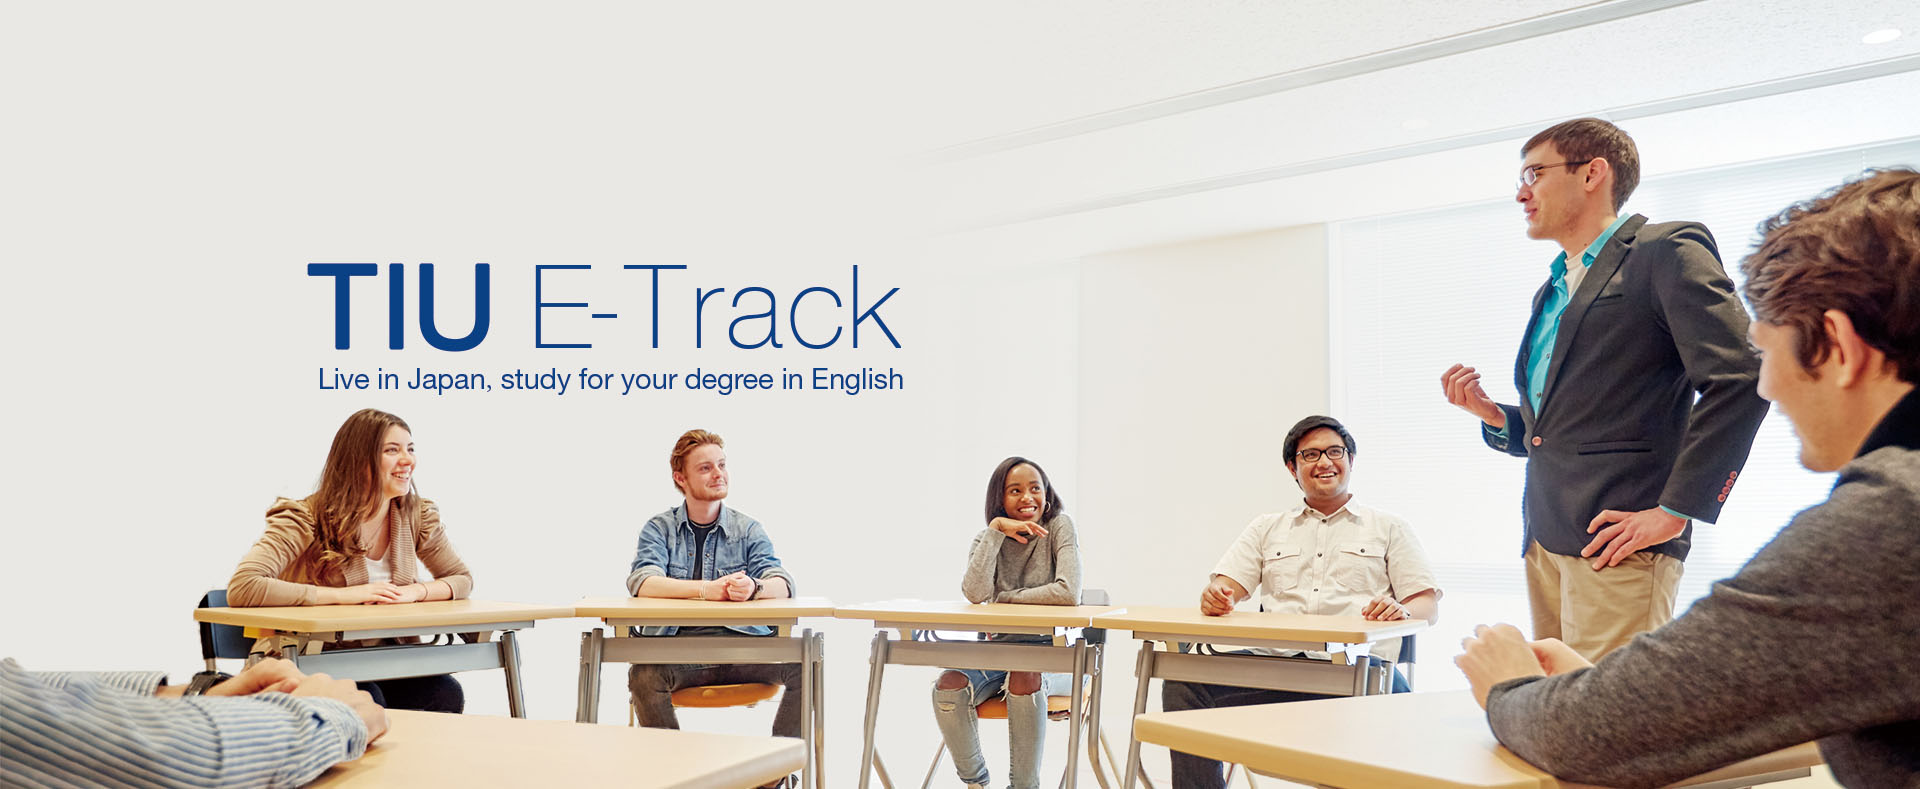 TIU E-Track Live in Japan, Study for your degree in English.